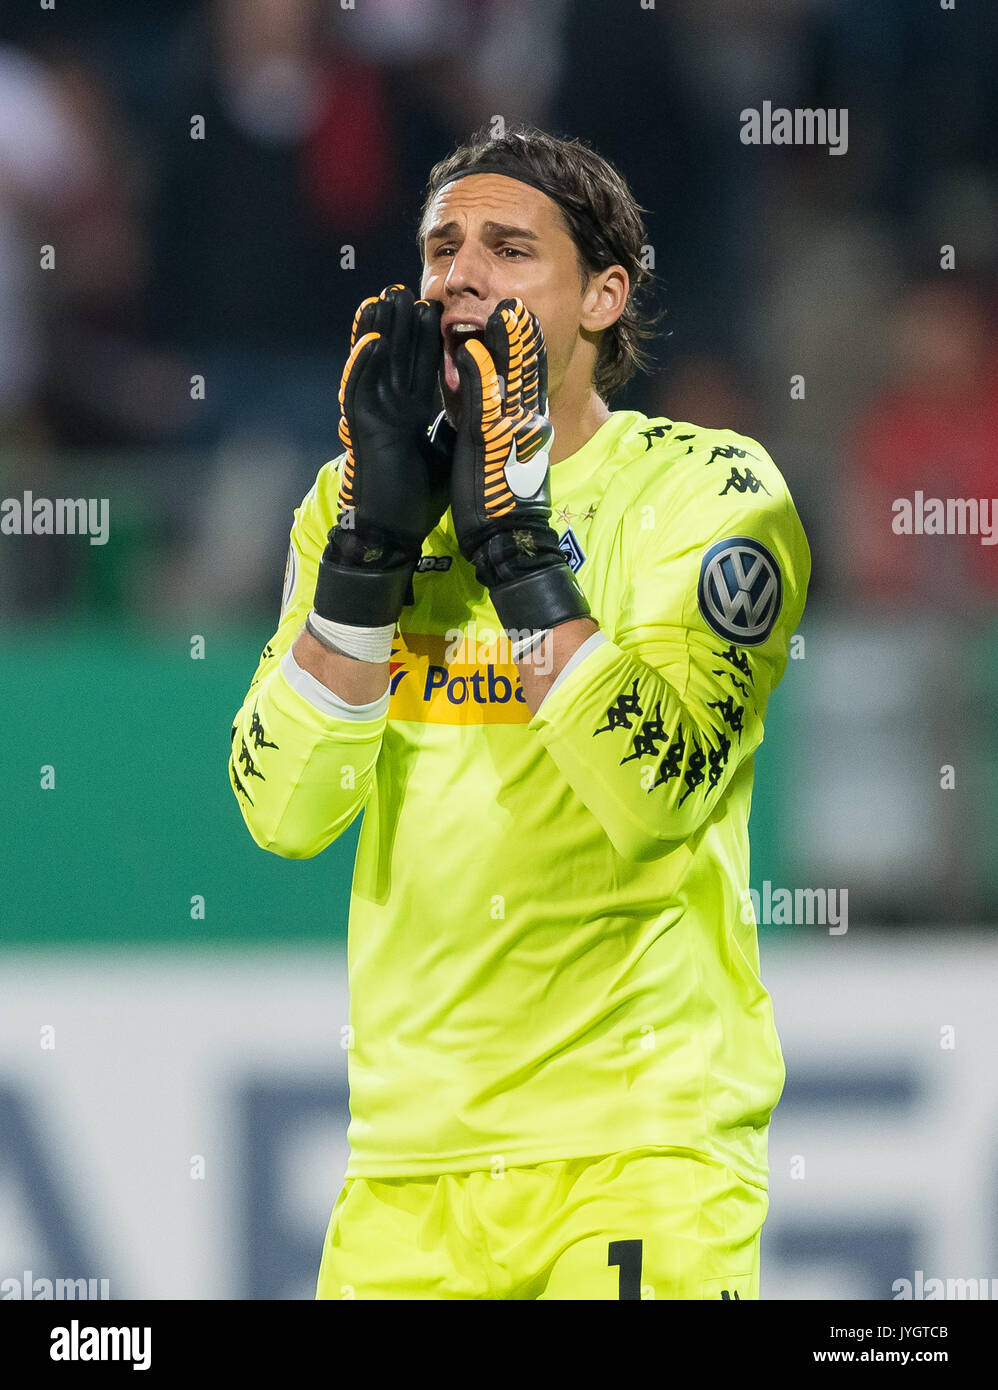 Goalkeeper Yann Sommer High Resolution Stock Photography And Images Alamy